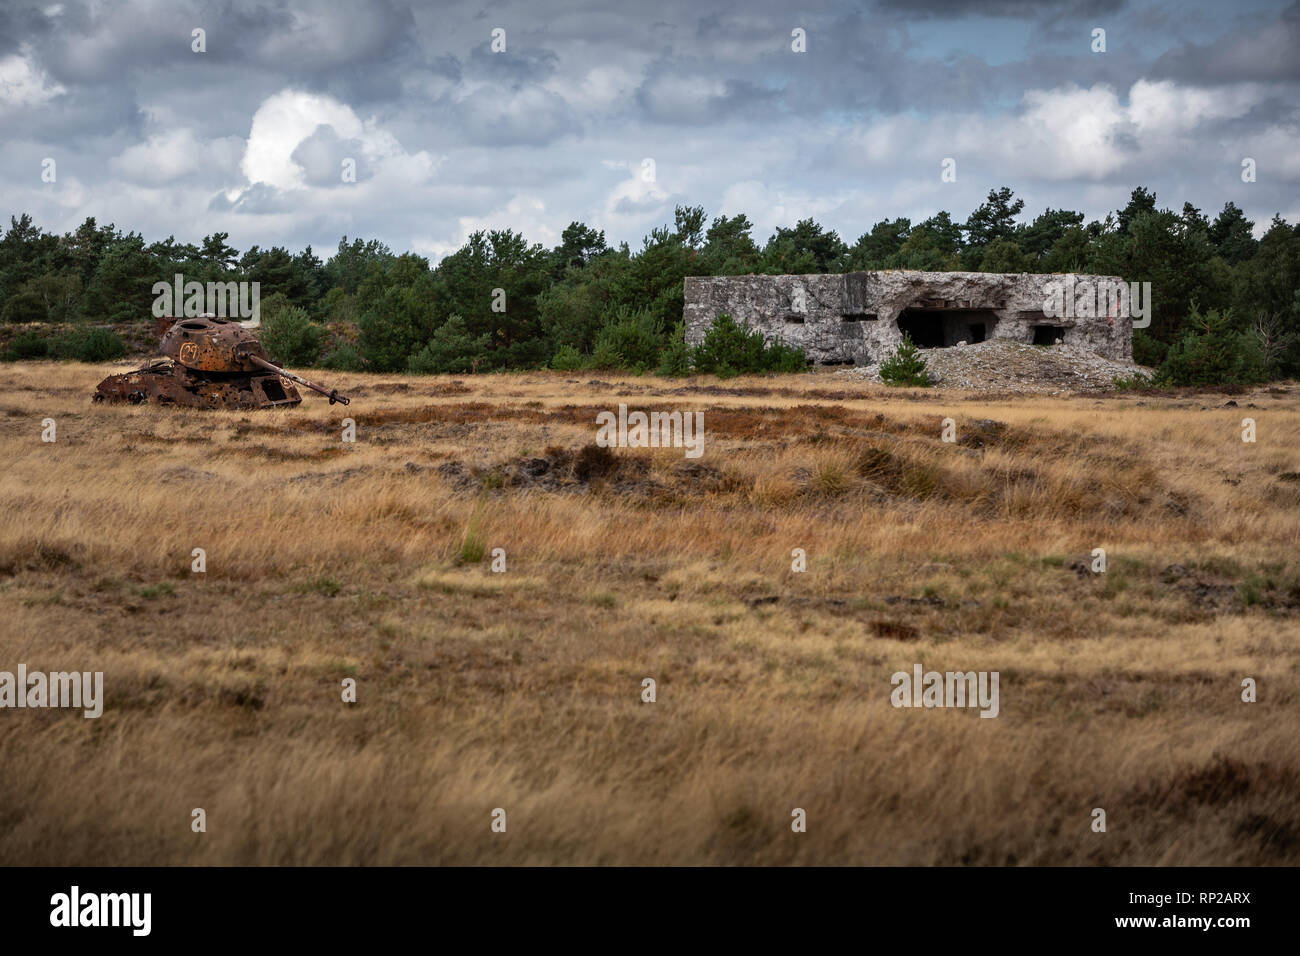 Discarded tank and bunker at the Bundeswehr firing range and military training area of the at the military training area Senne in Hšvelhof, which is still operated by the British Army. - Stock Image